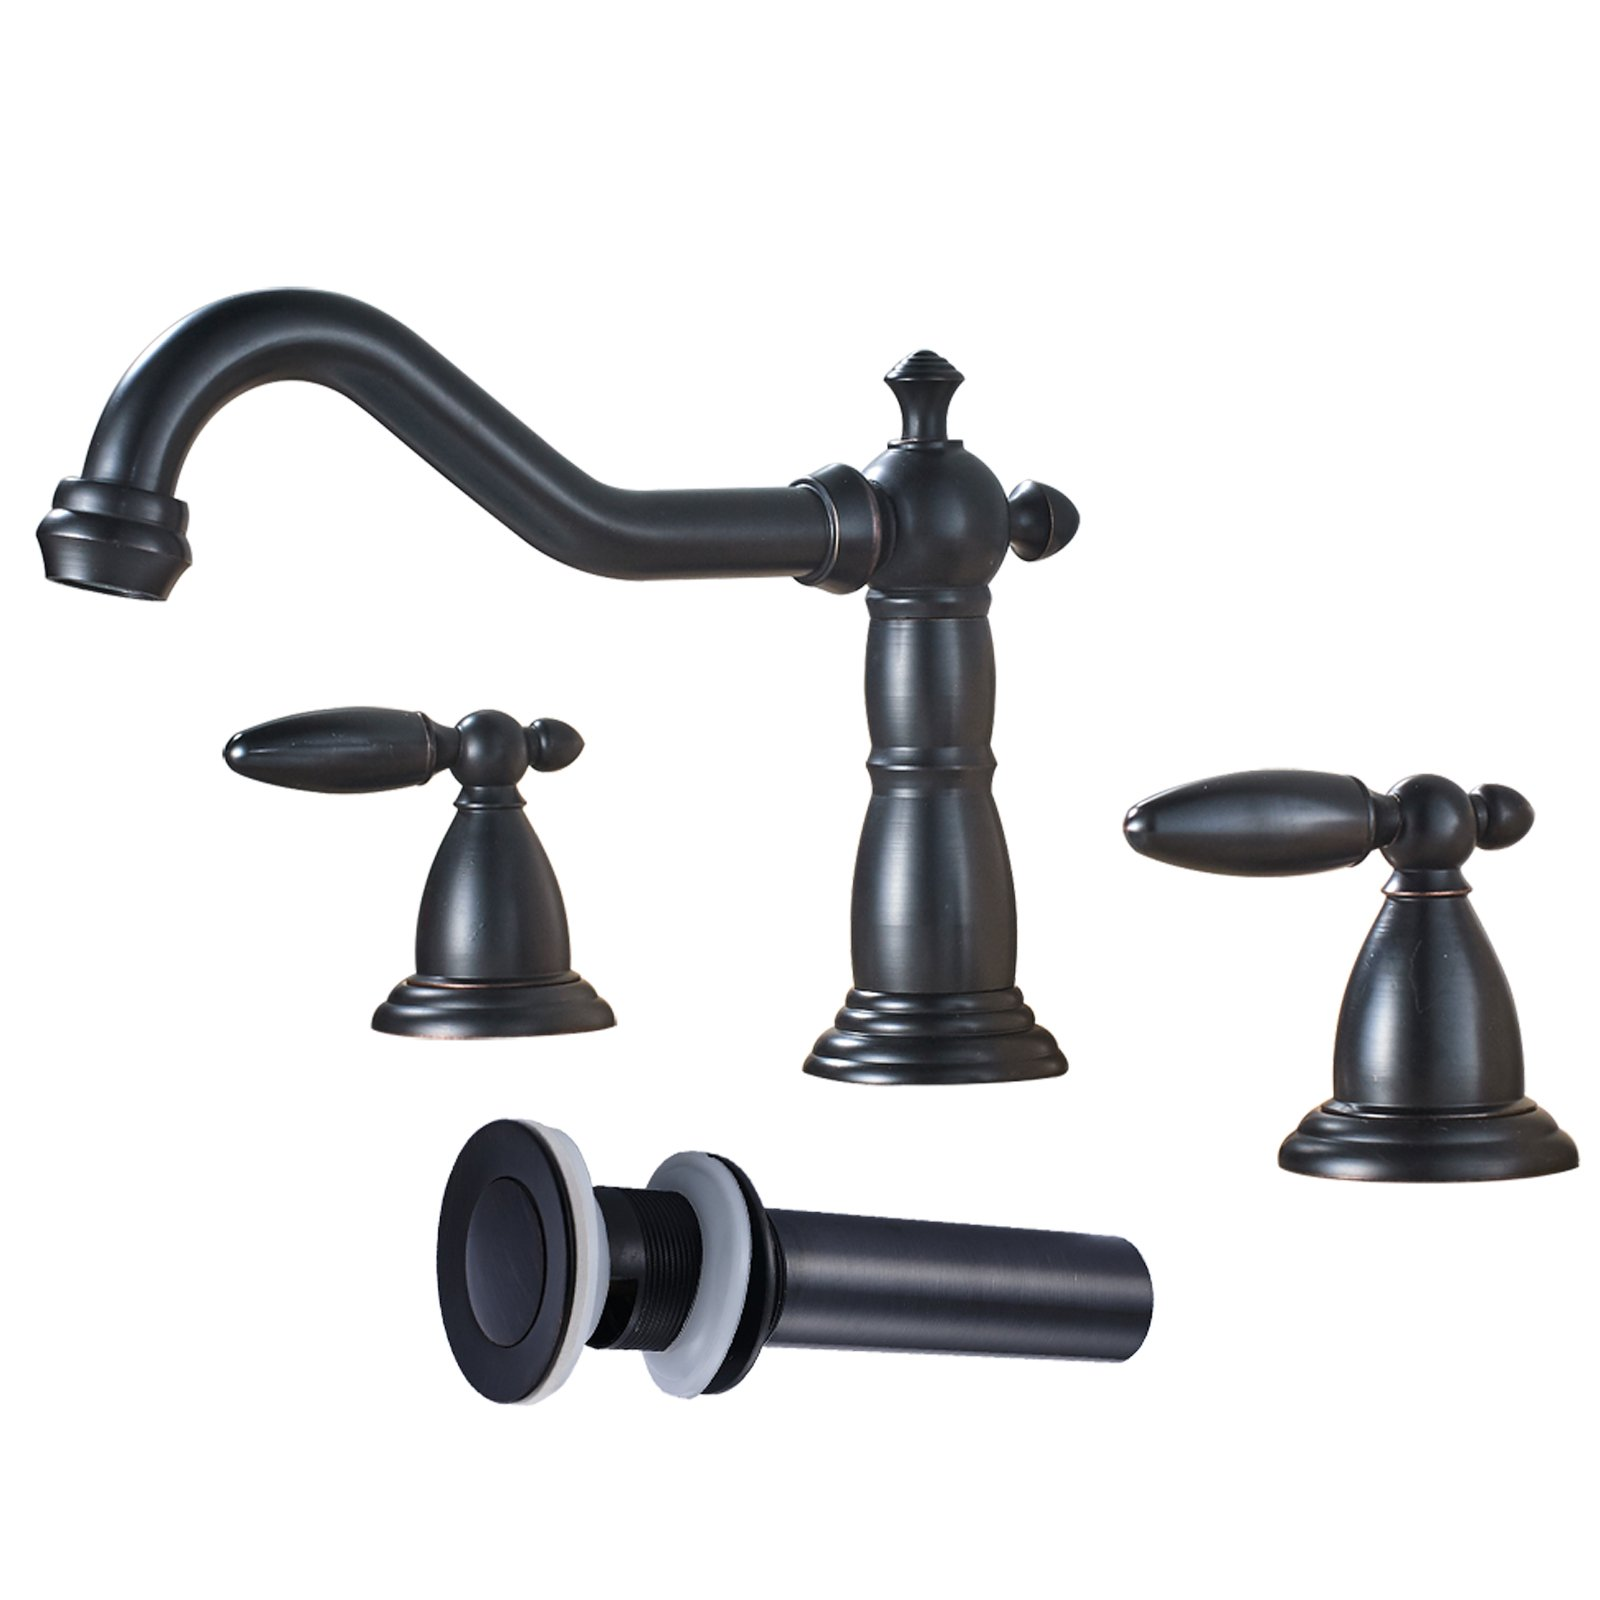 Votamuta Deck Mounted Bathroom Basin Sink Faucet Dual Handles Widespread Lavatory Mixer Tap with Pop Up Drain,Oil Rubbed Bronze